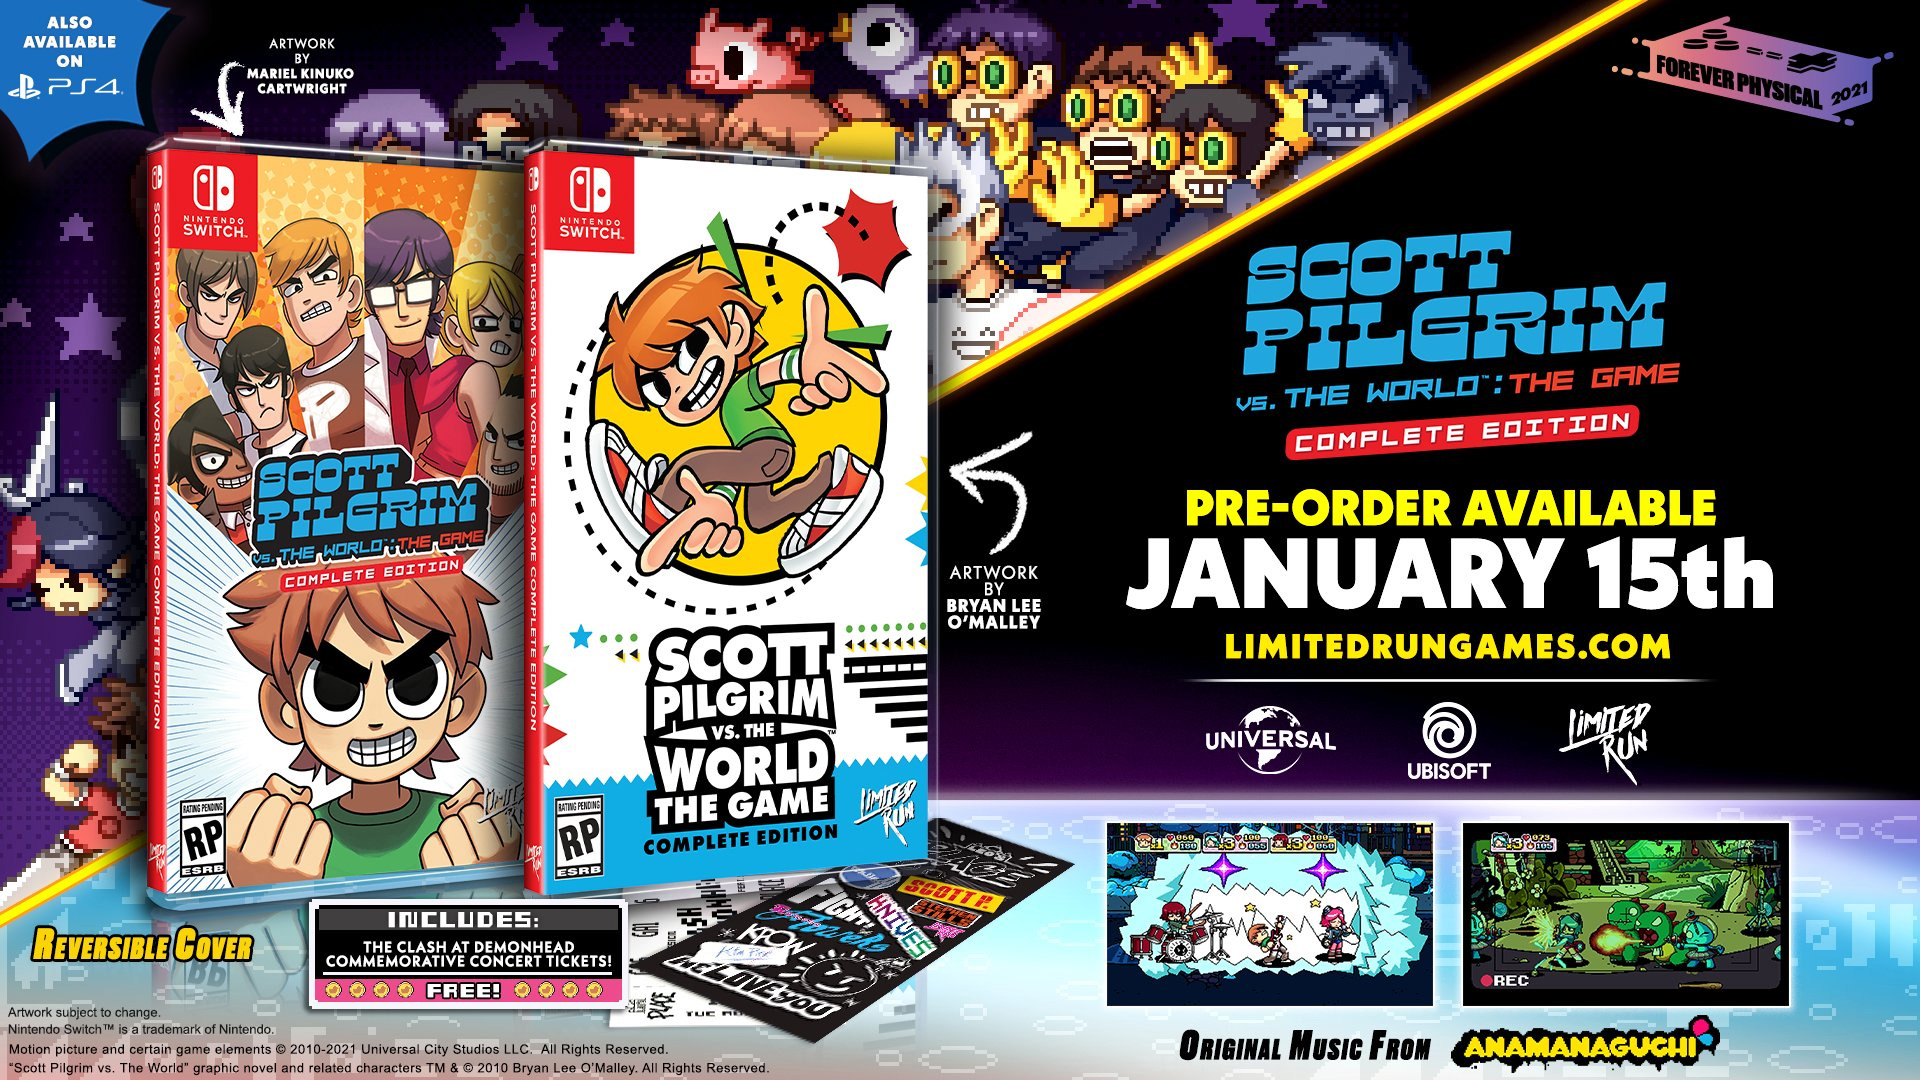 The Standard physical edition of Scott Pilgrim vs. the World: The Game